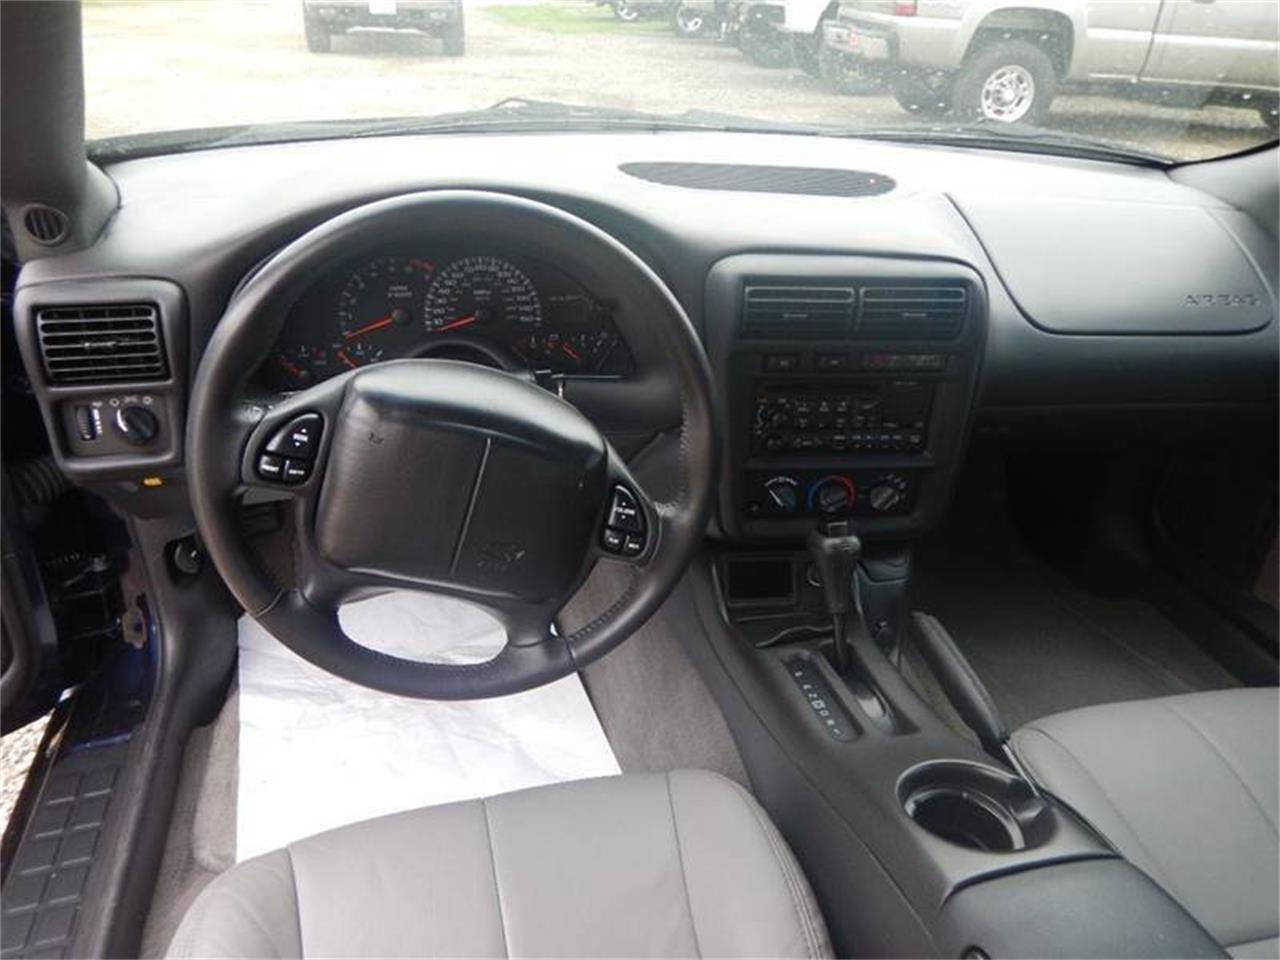 2002 Chevrolet Camaro (CC-1220945) for sale in Clarence, Iowa